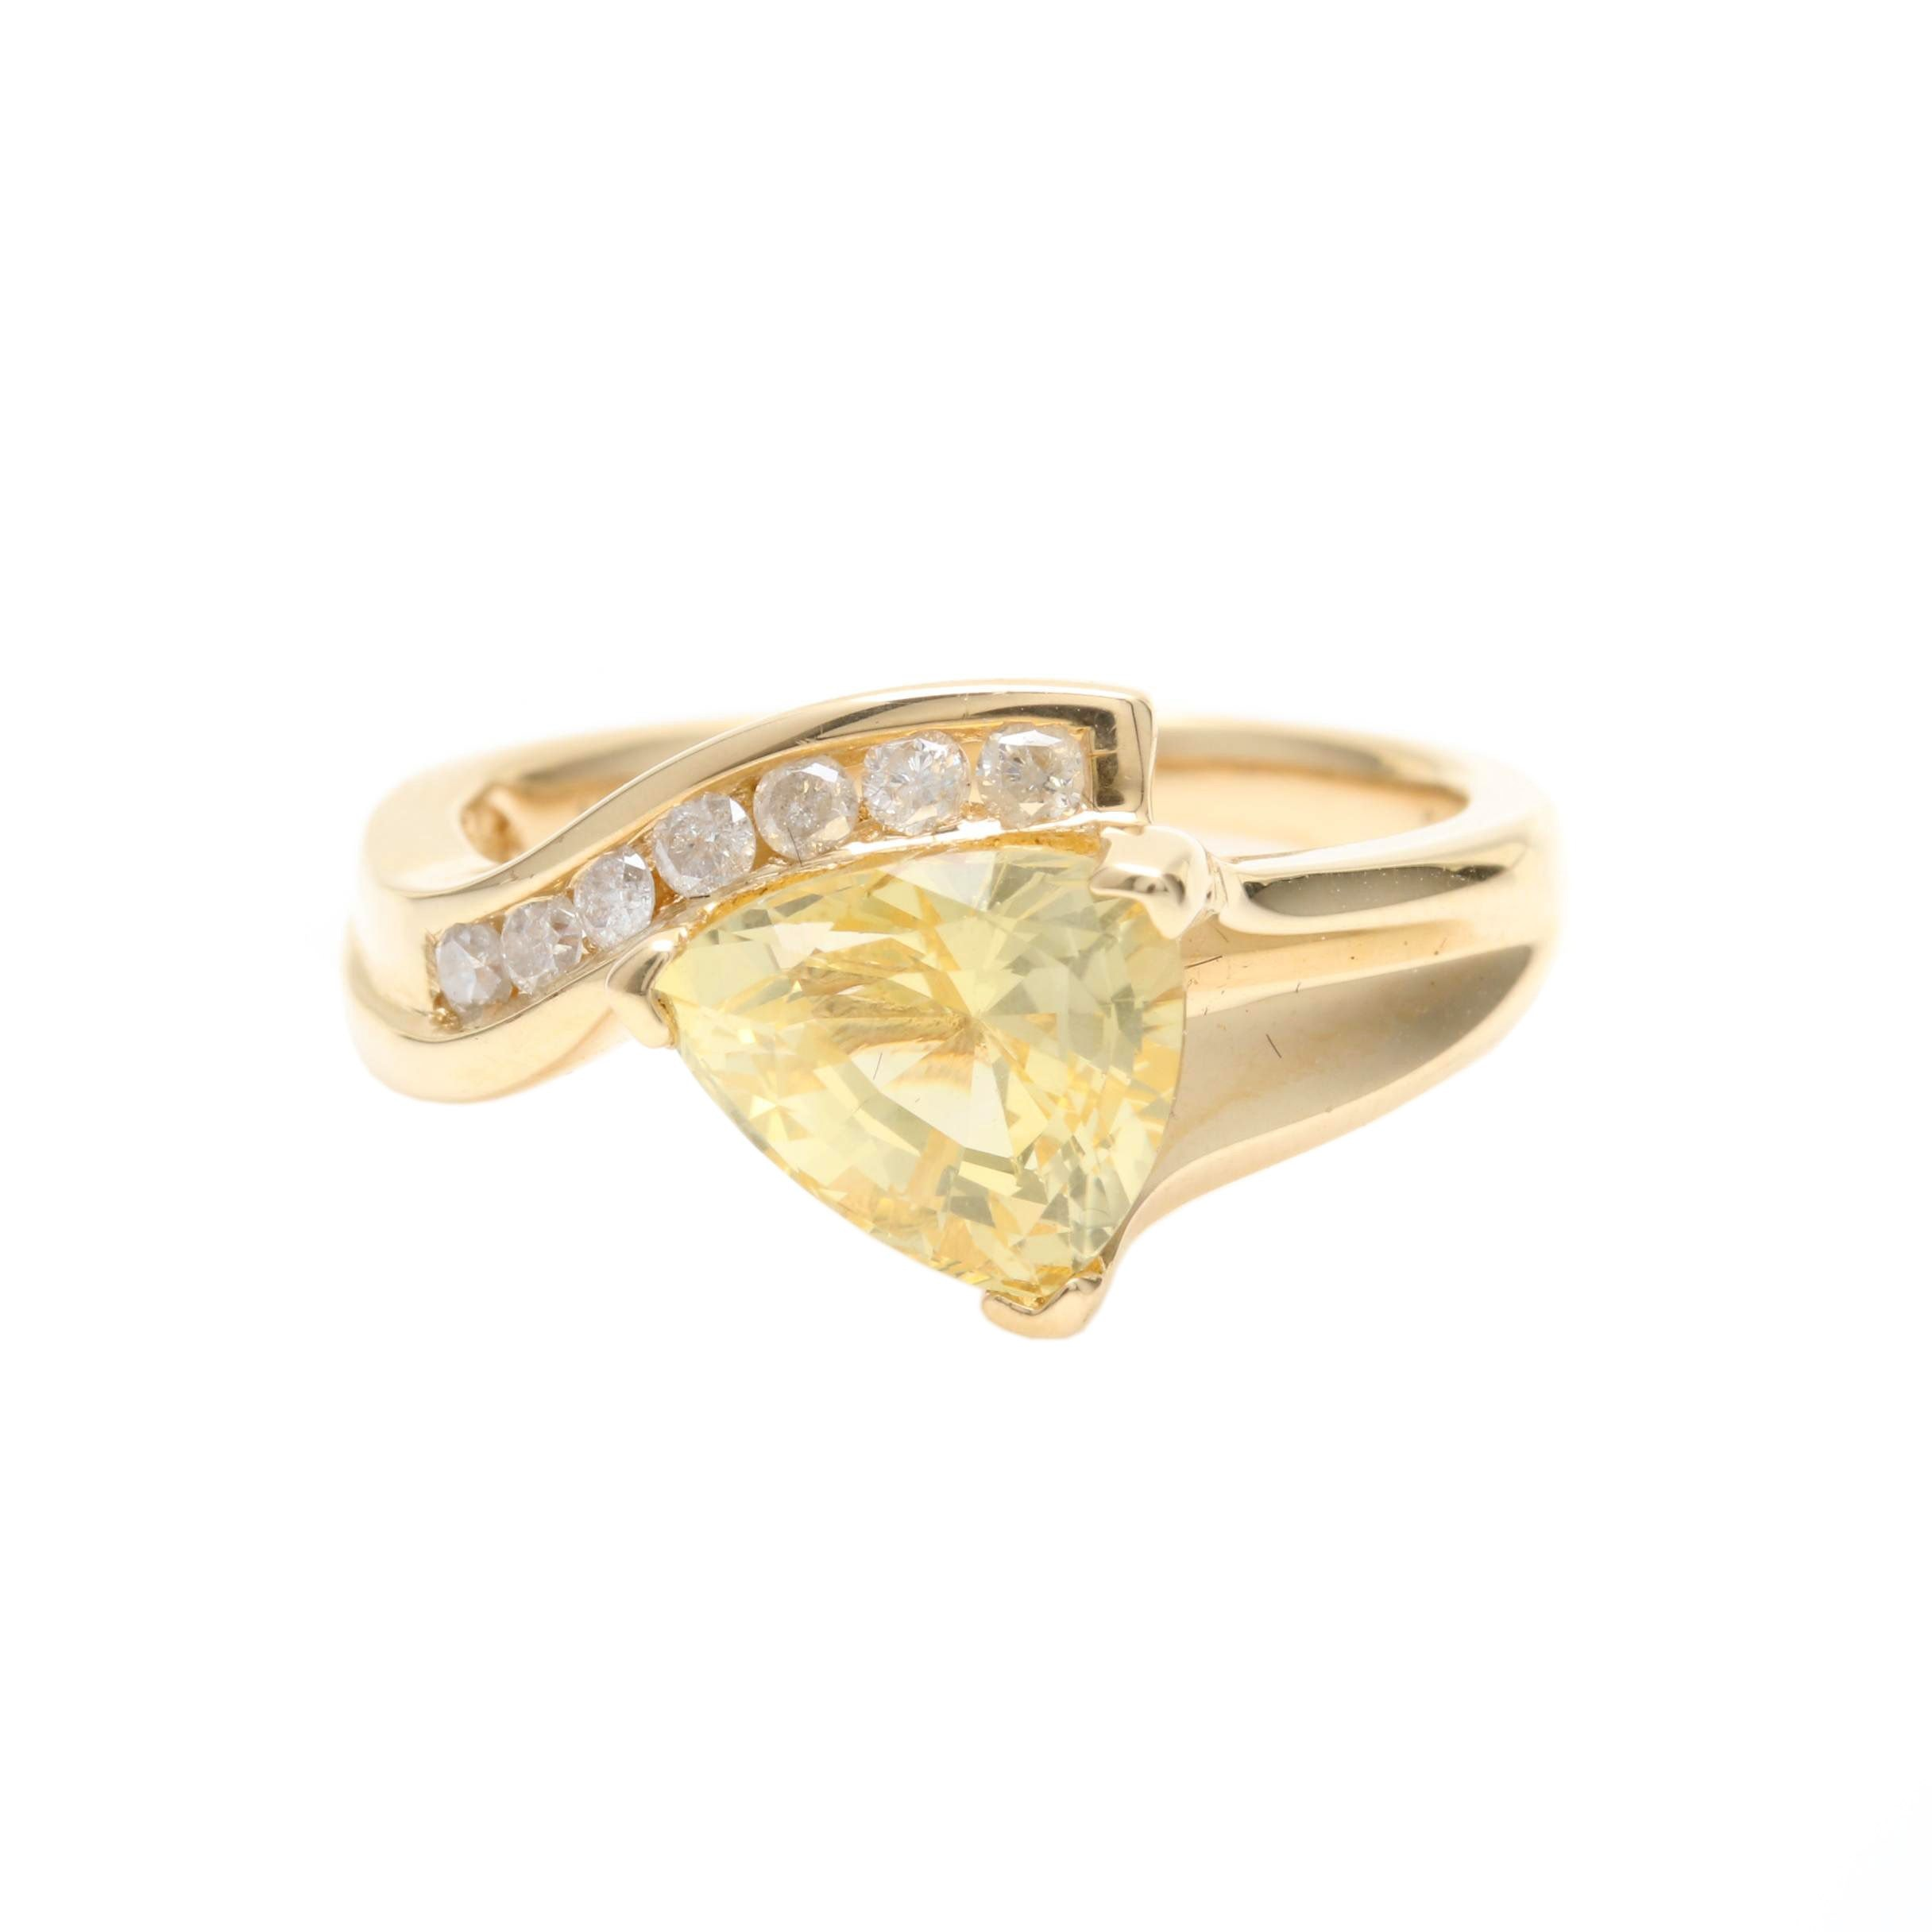 14K Yellow Gold 2.99 CT Sapphire and Diamond Ring Including GIA Certificate